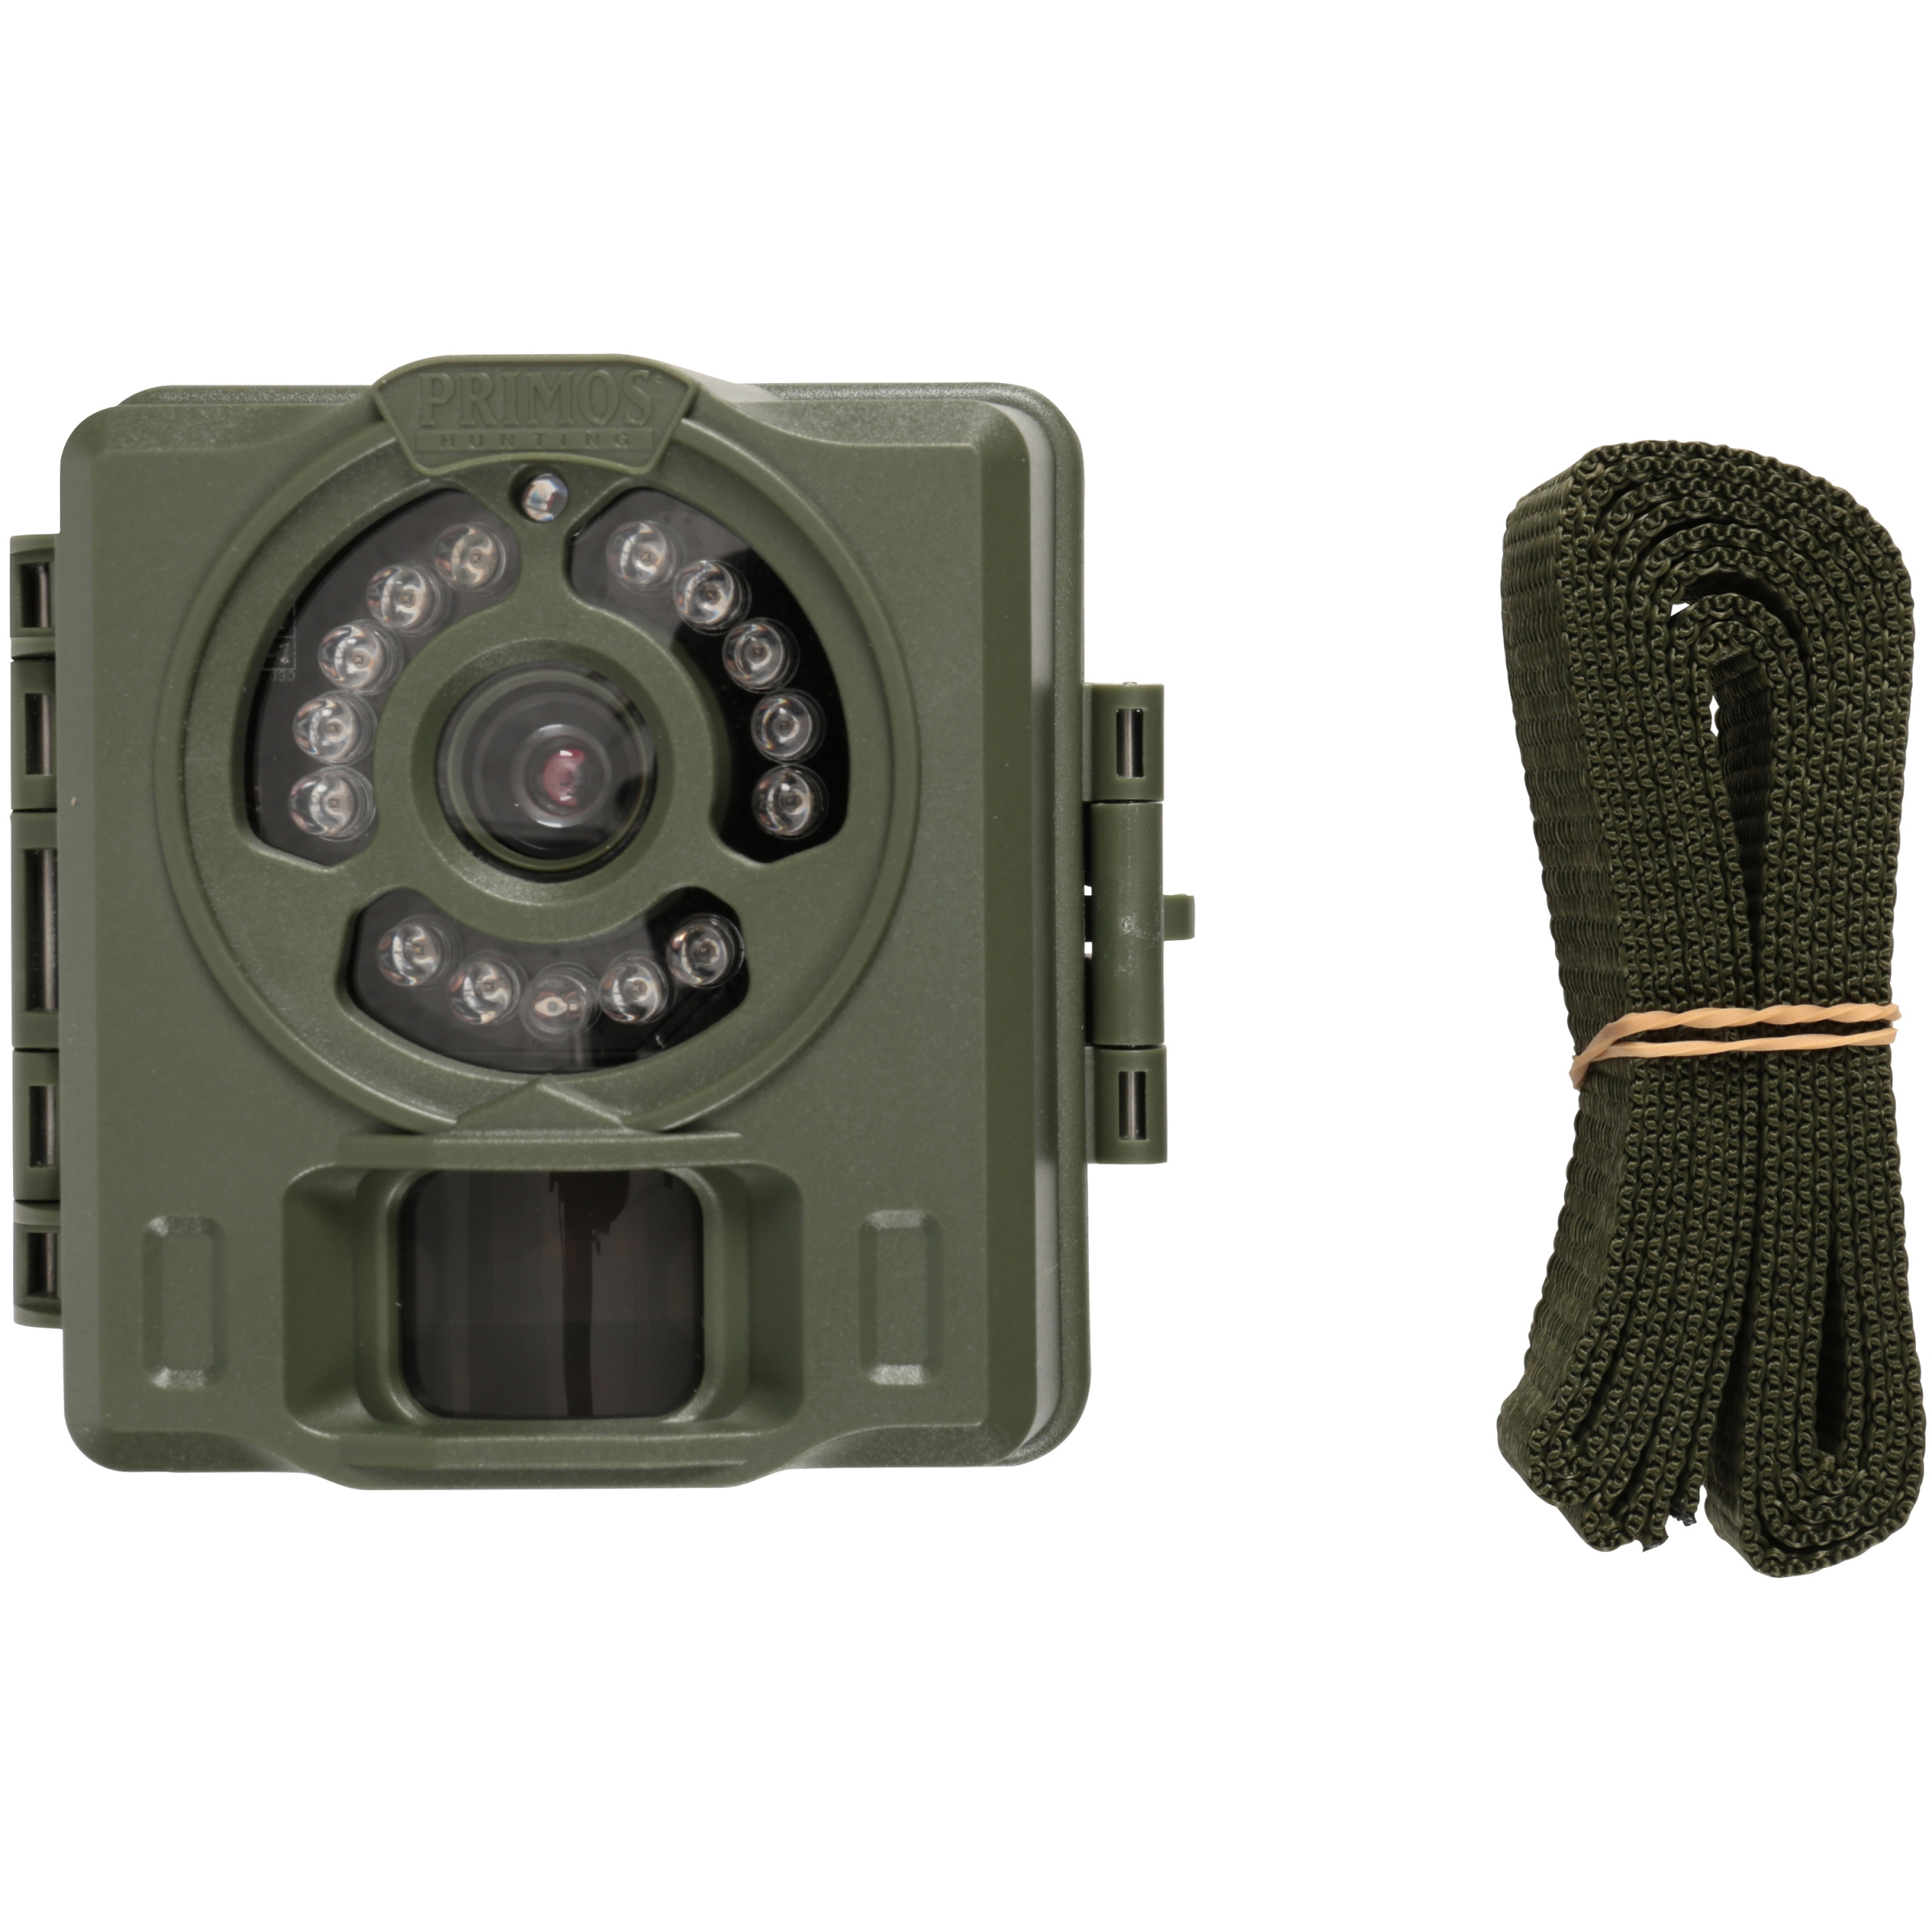 Primos Hunting Bullet Proof 2 Trail Camera Carded Pack